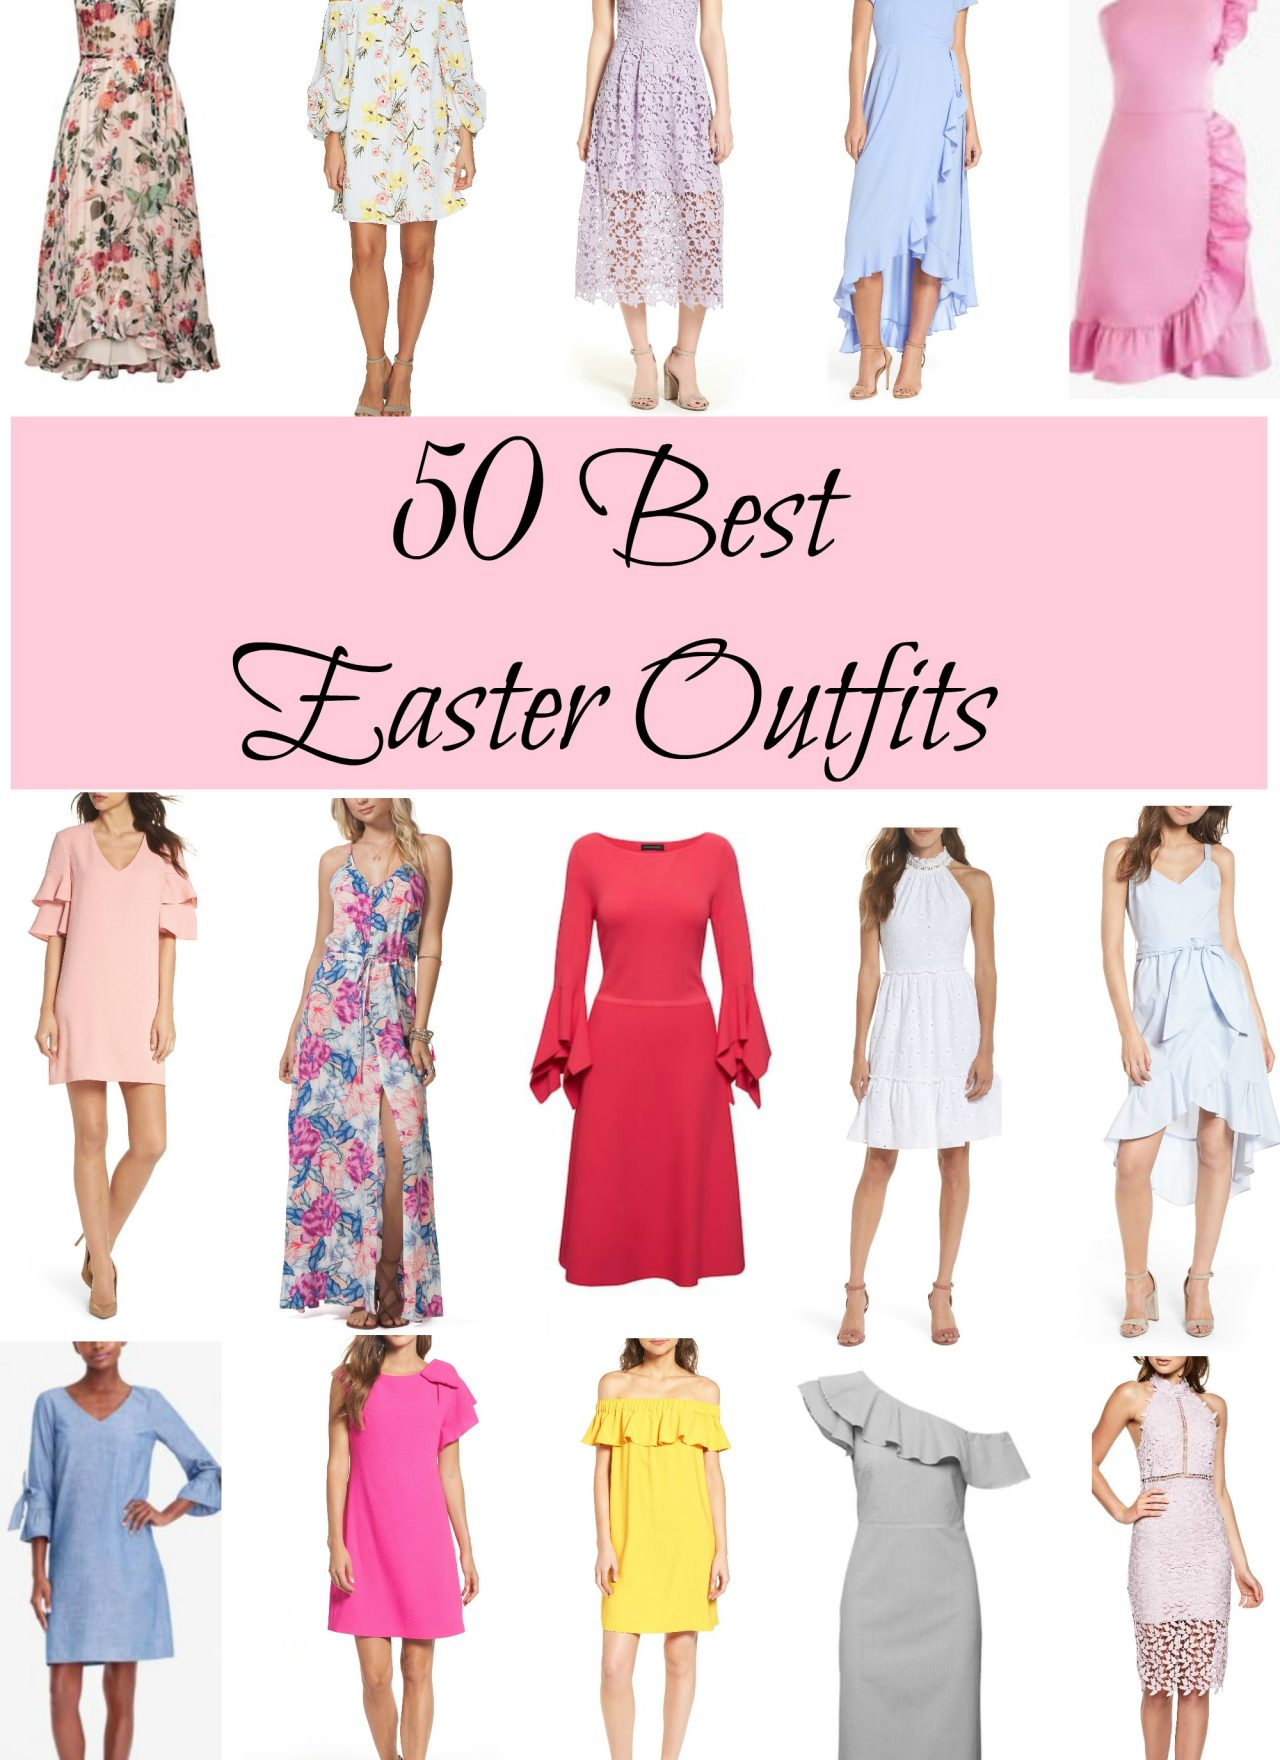 50 Best Easter Outfits